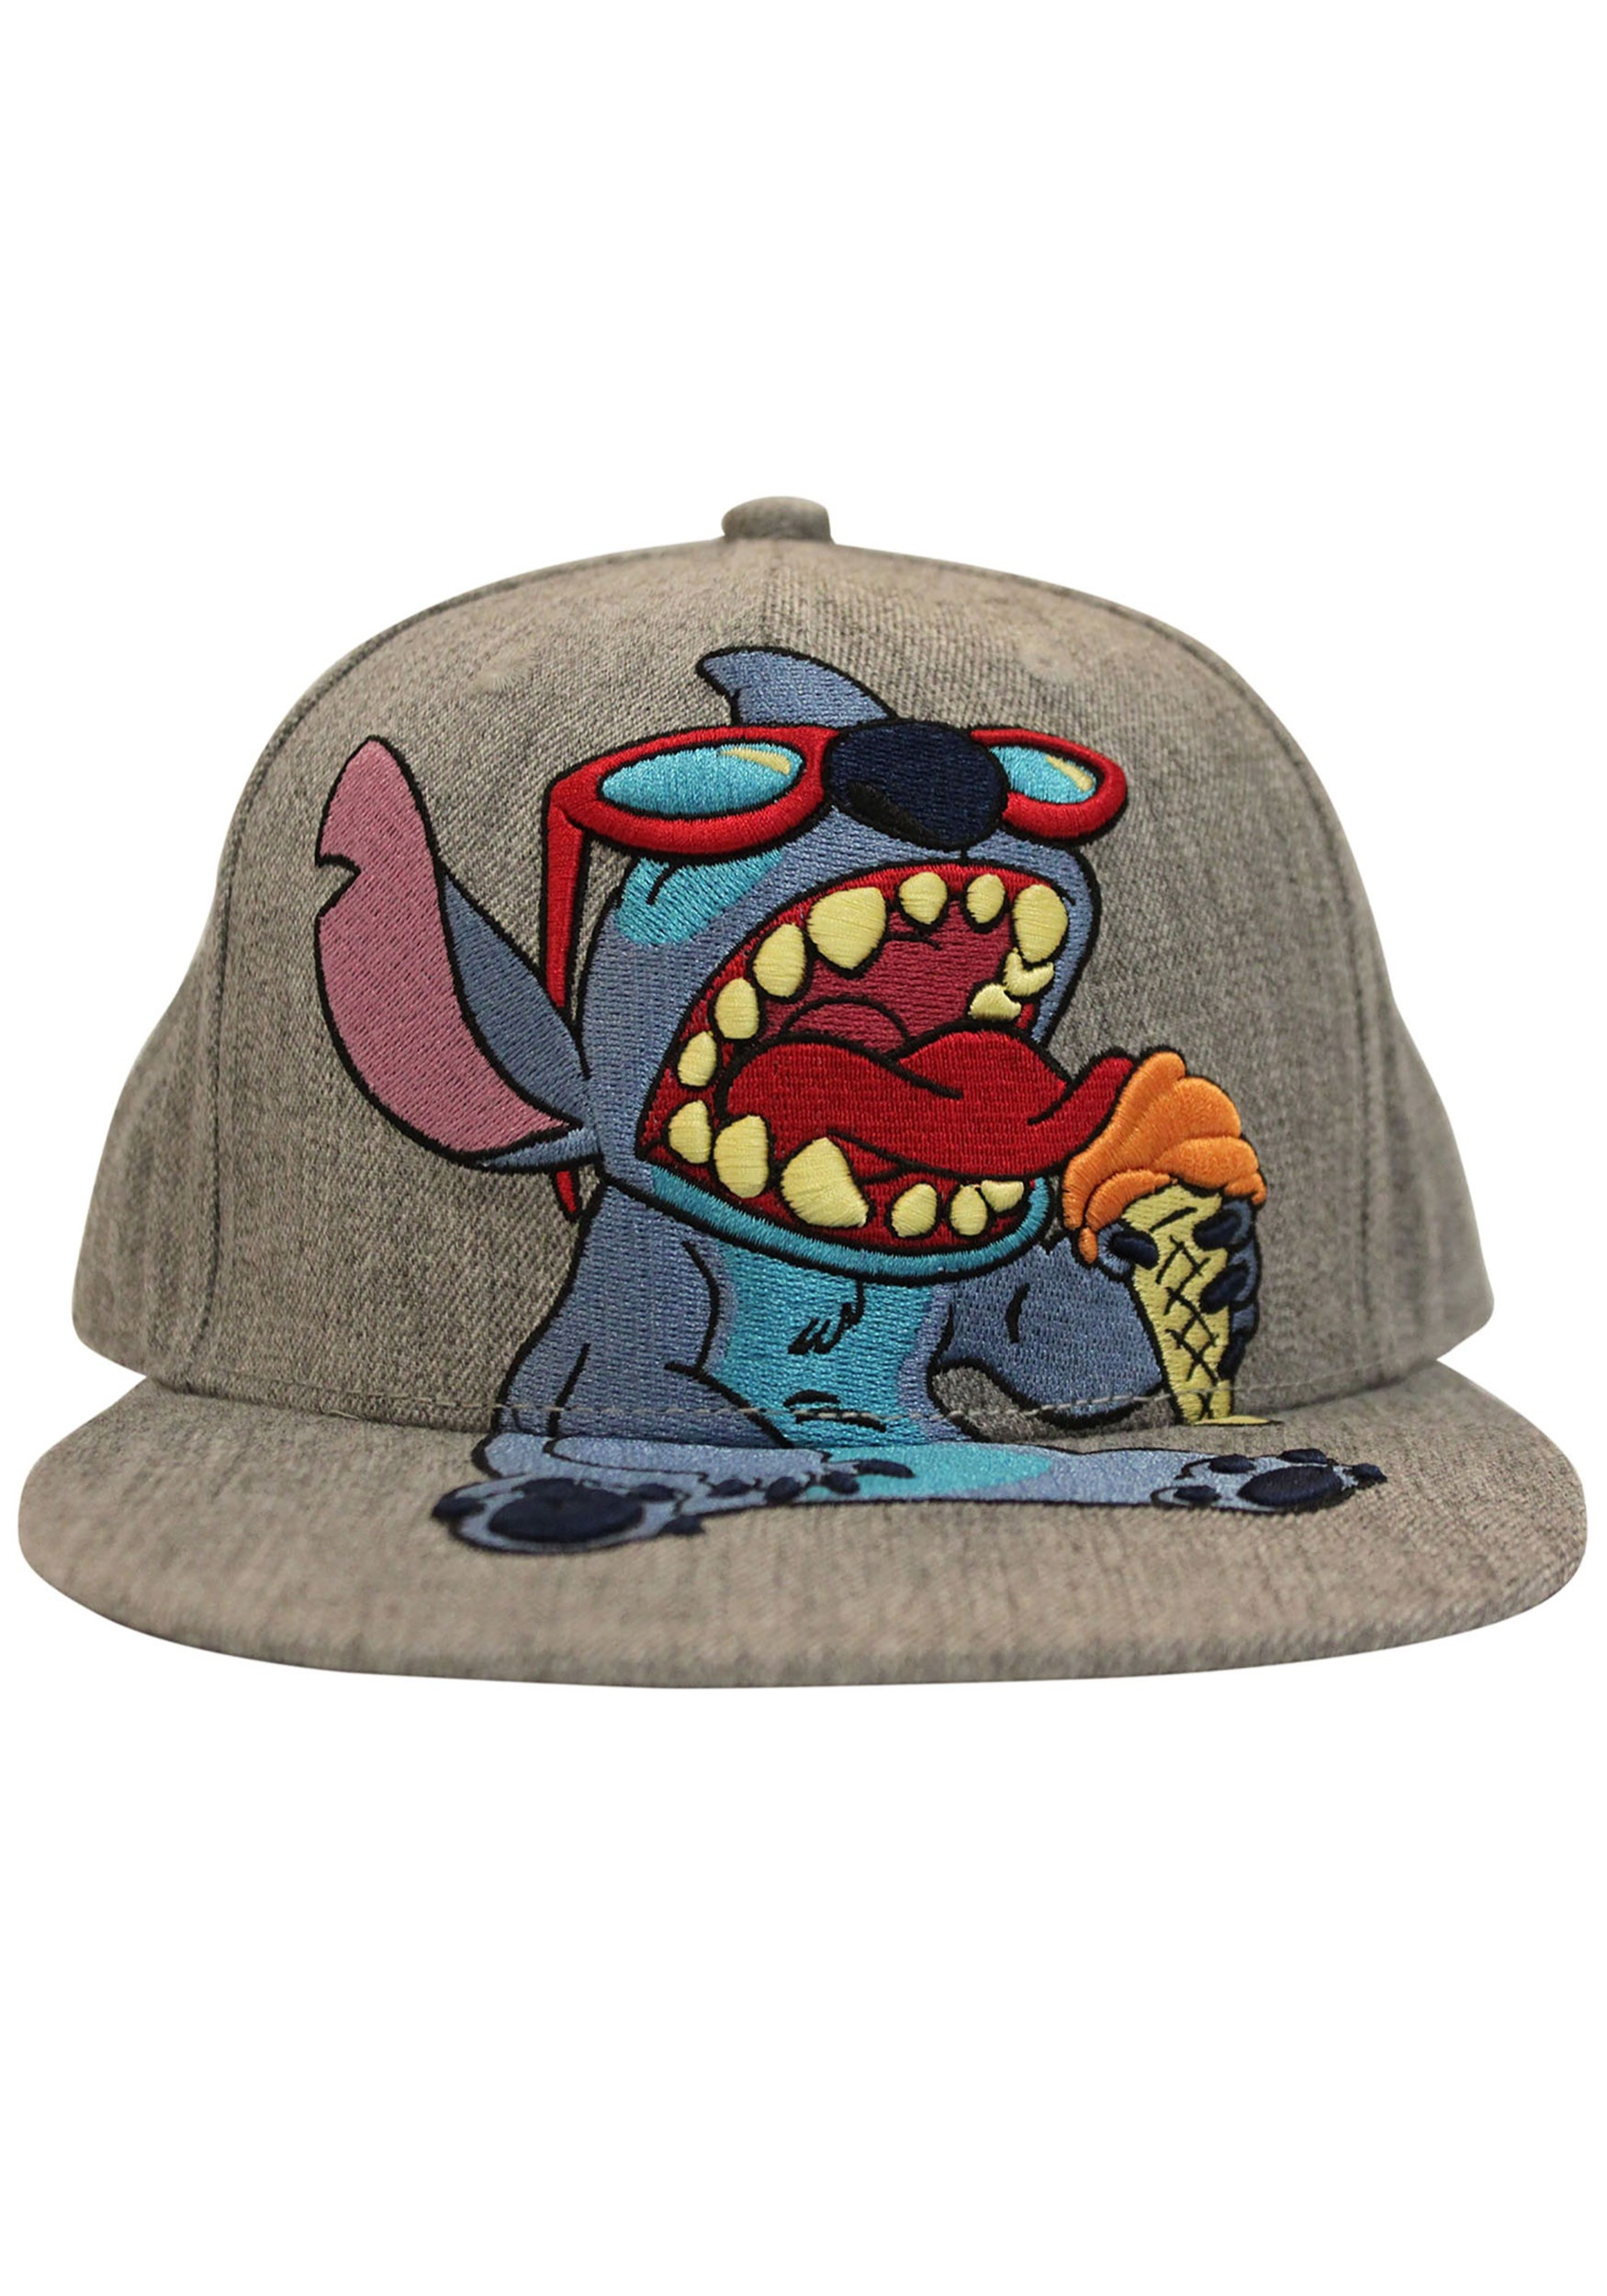 5770411c93c Stitch Snapback Hat-update1